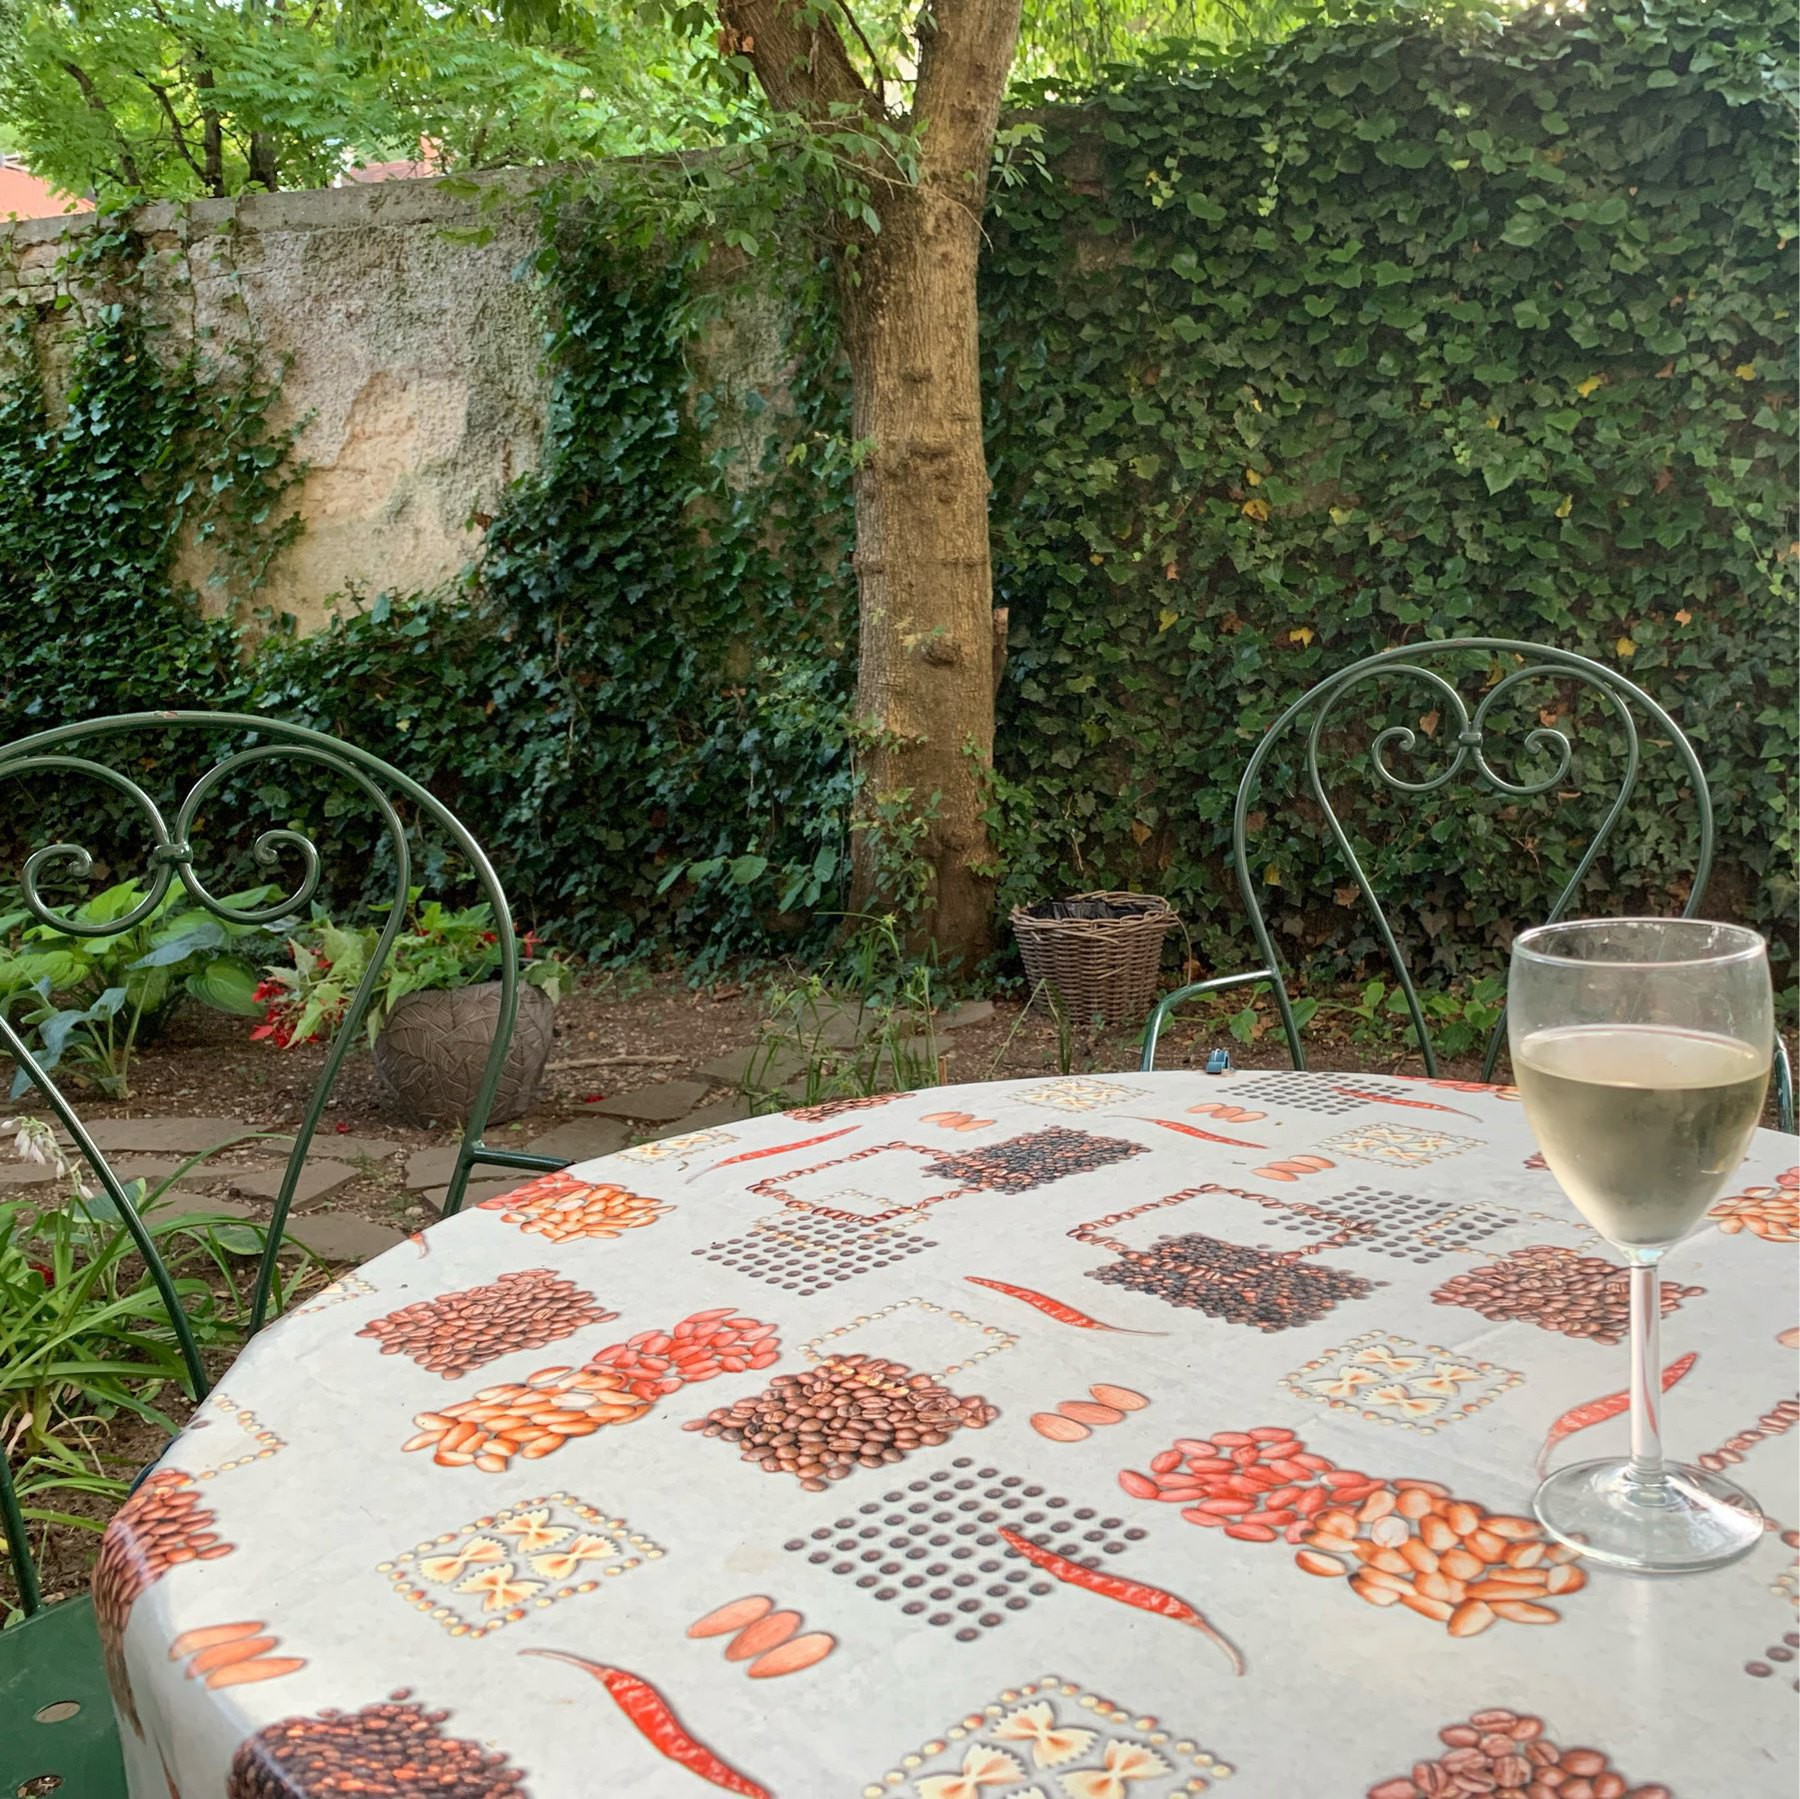 backyard with table and glass of wine